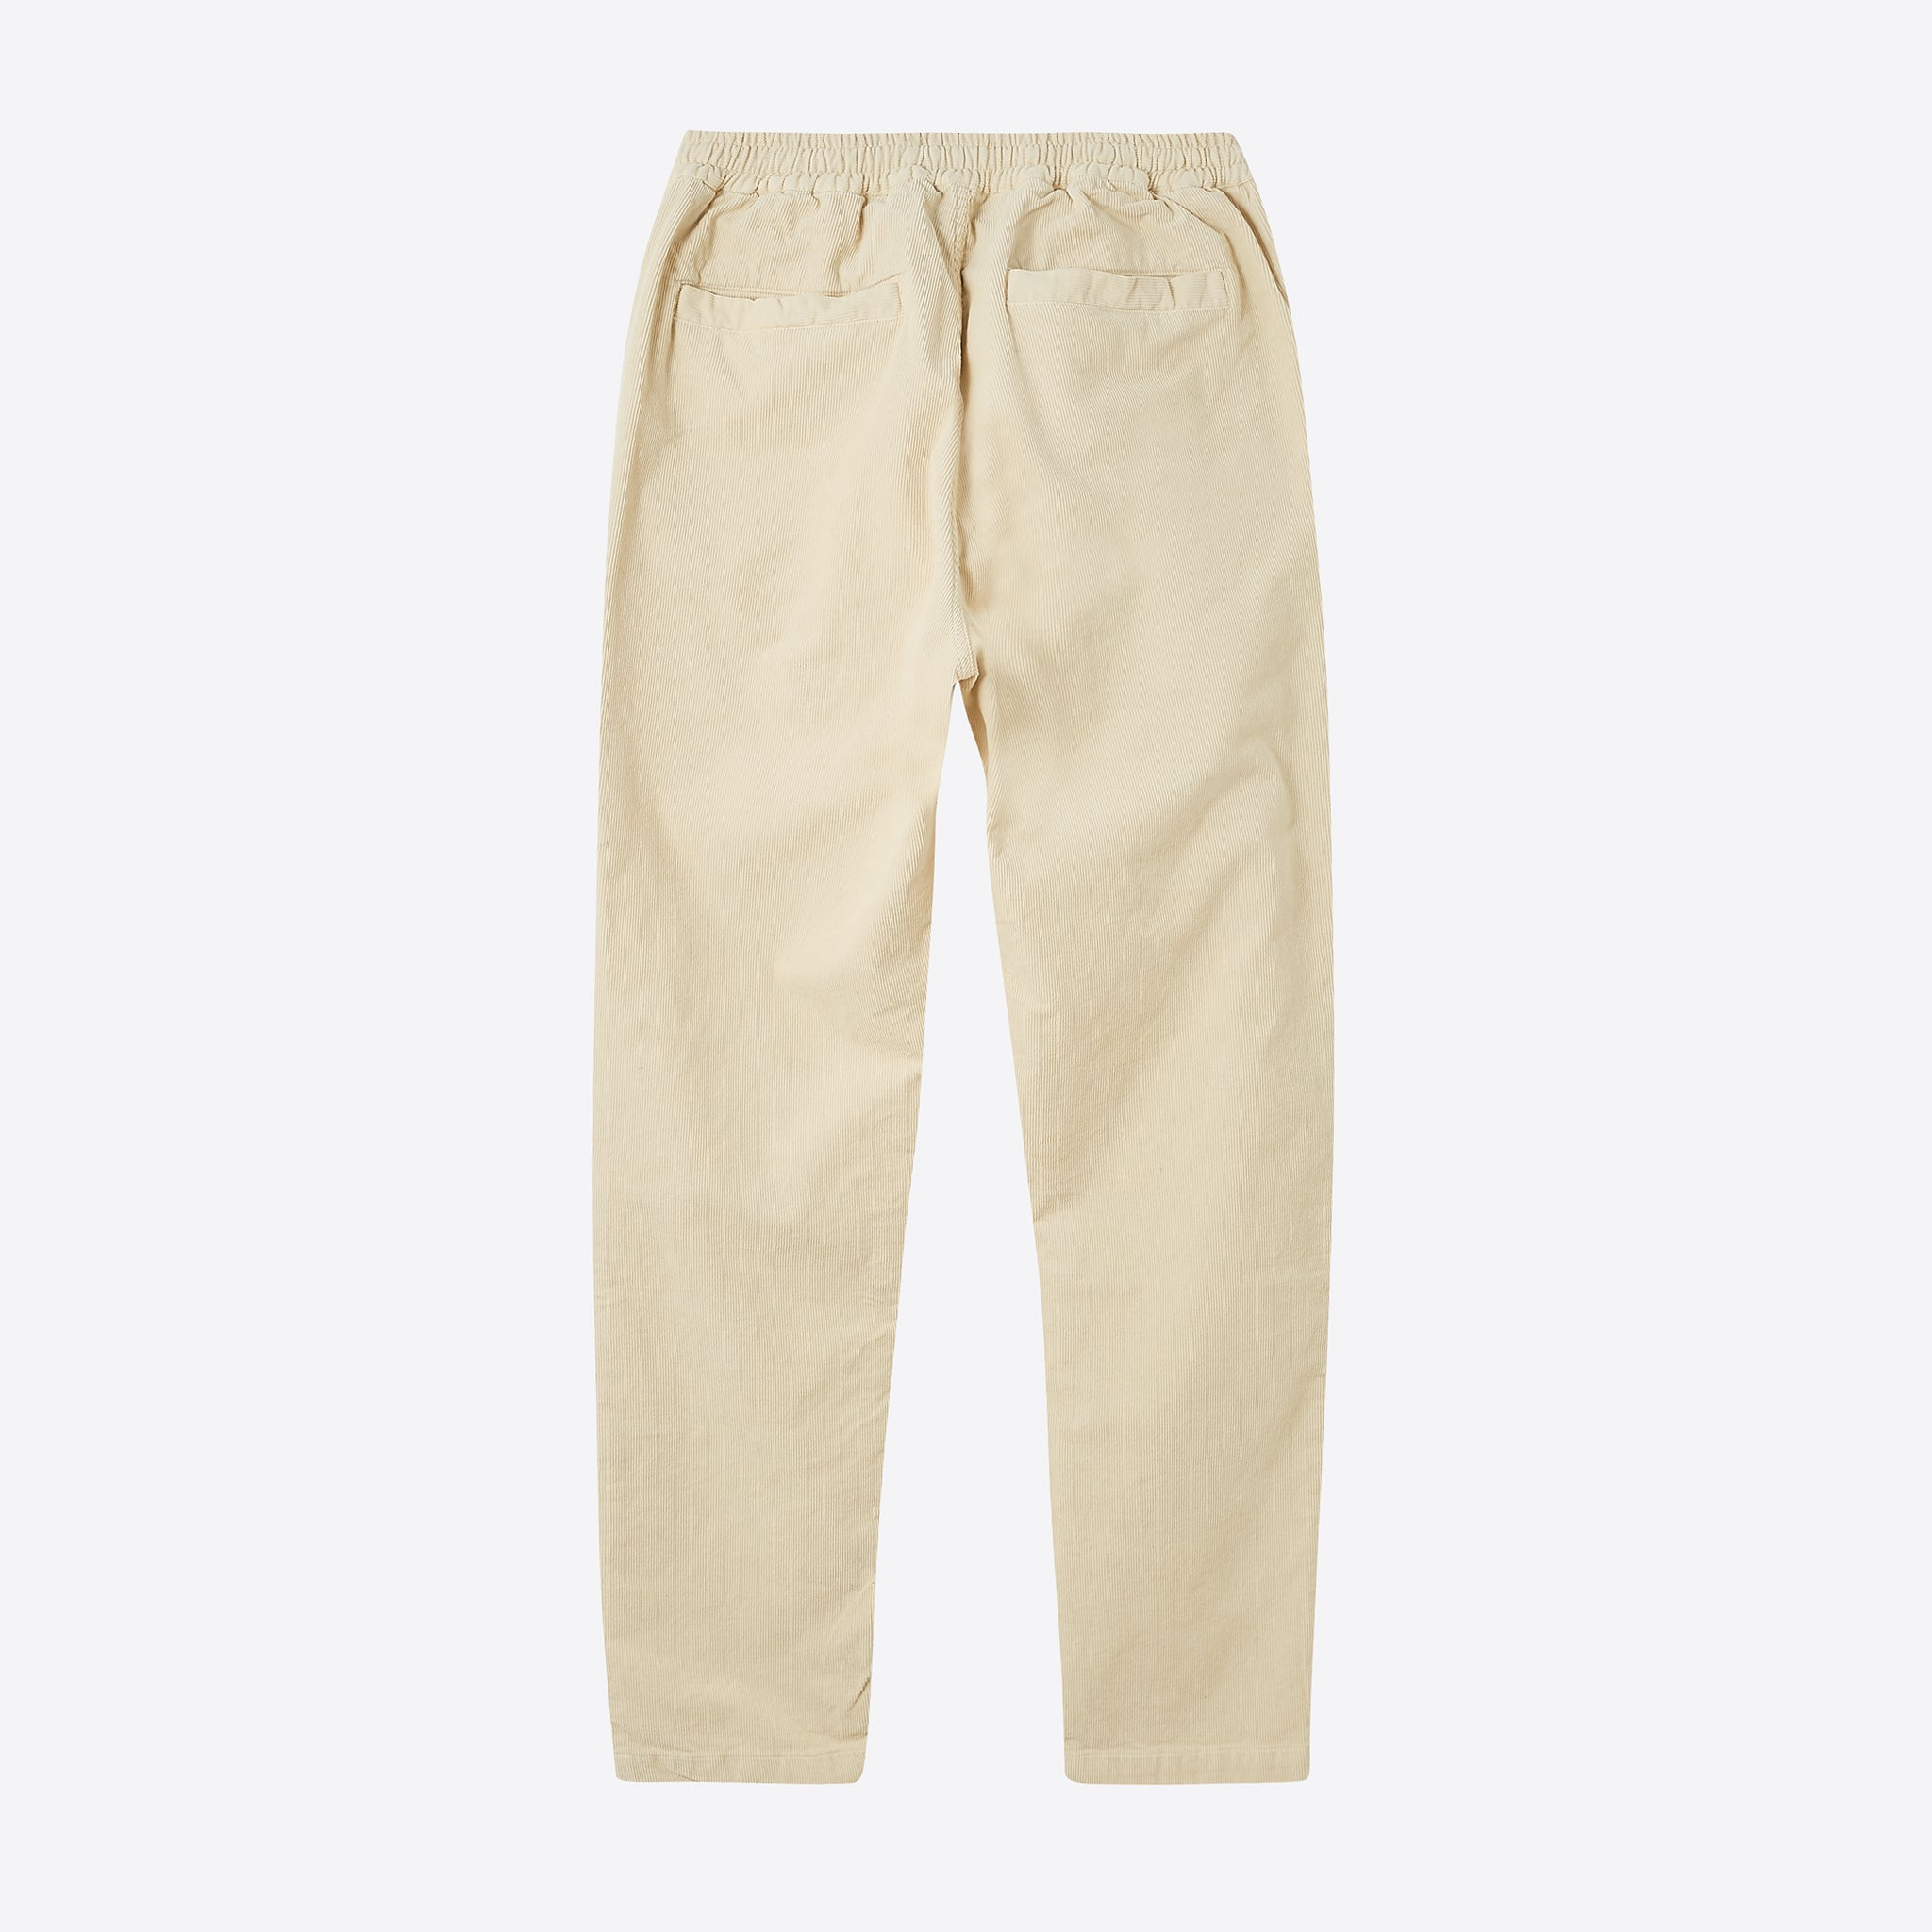 Wax London Alston Chinos in Light Clay Cord